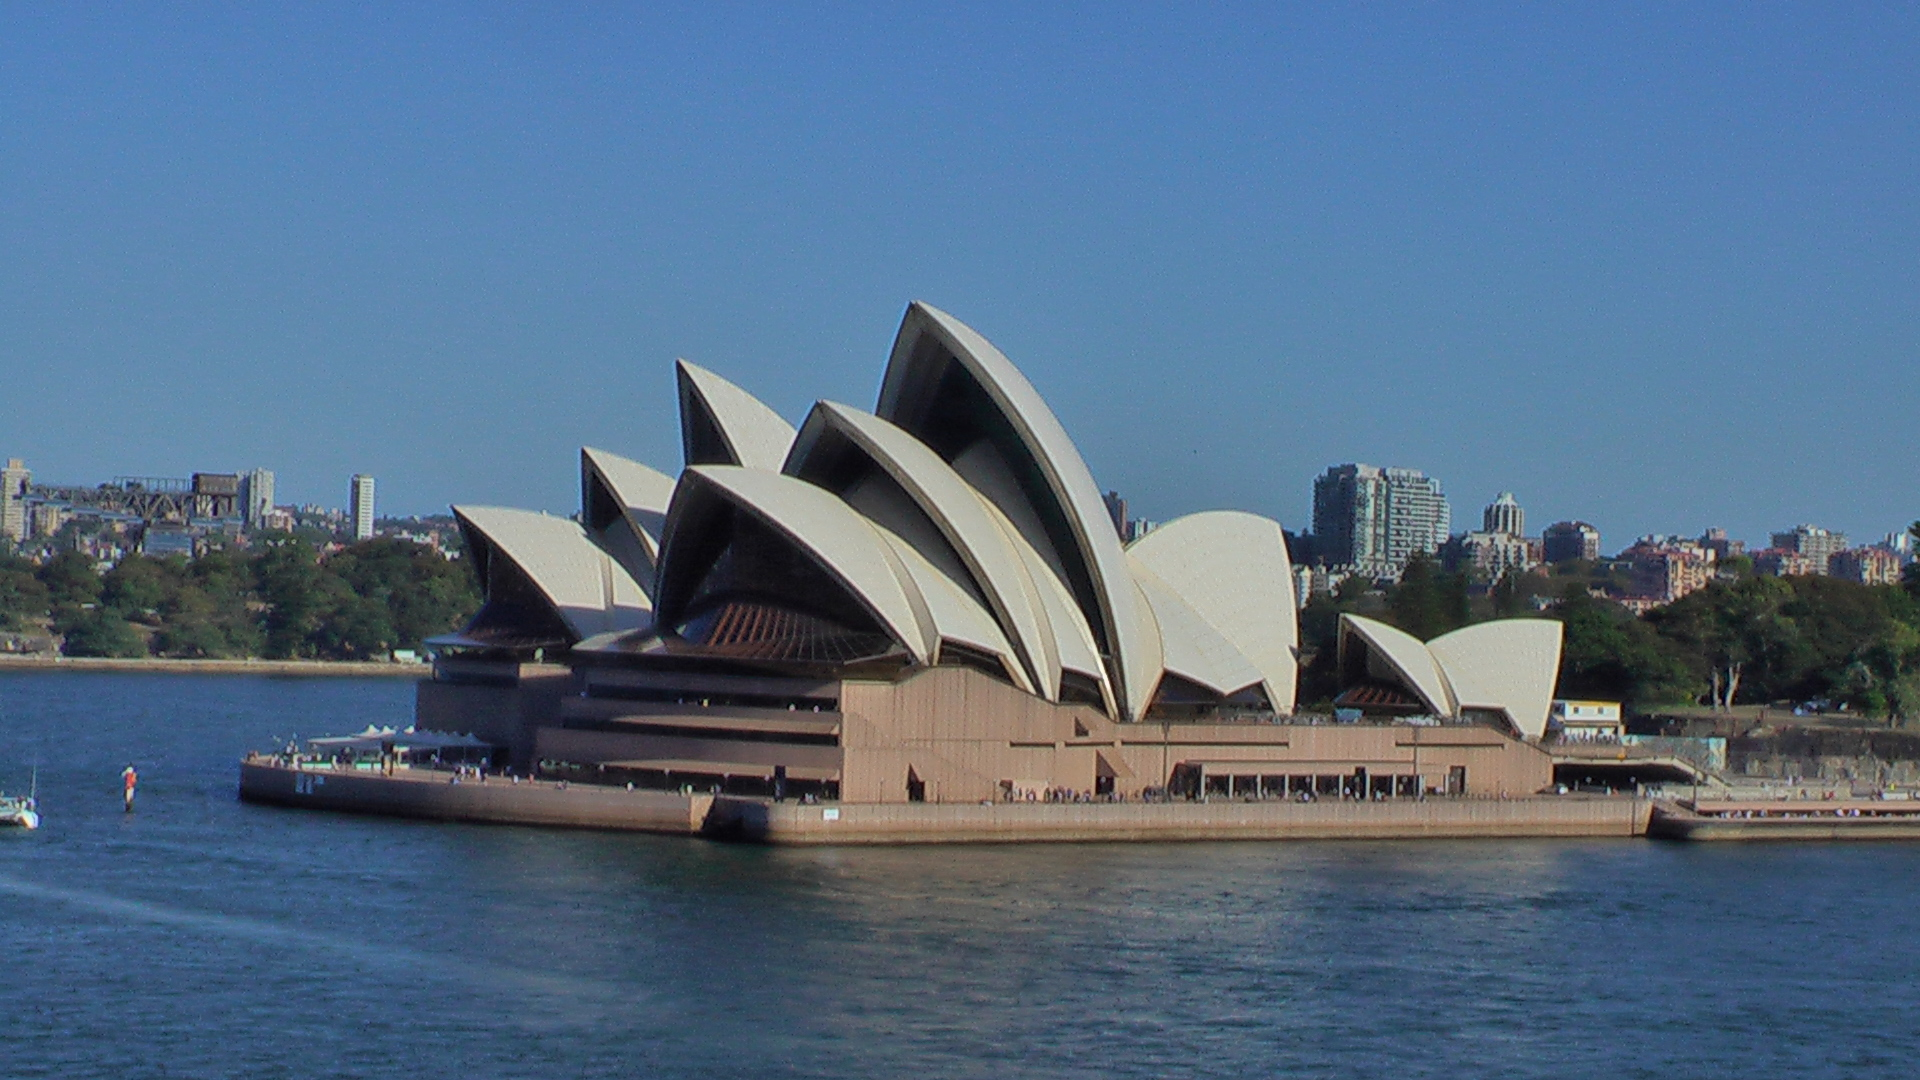 Sydney Opera House. Photo by D. Dears